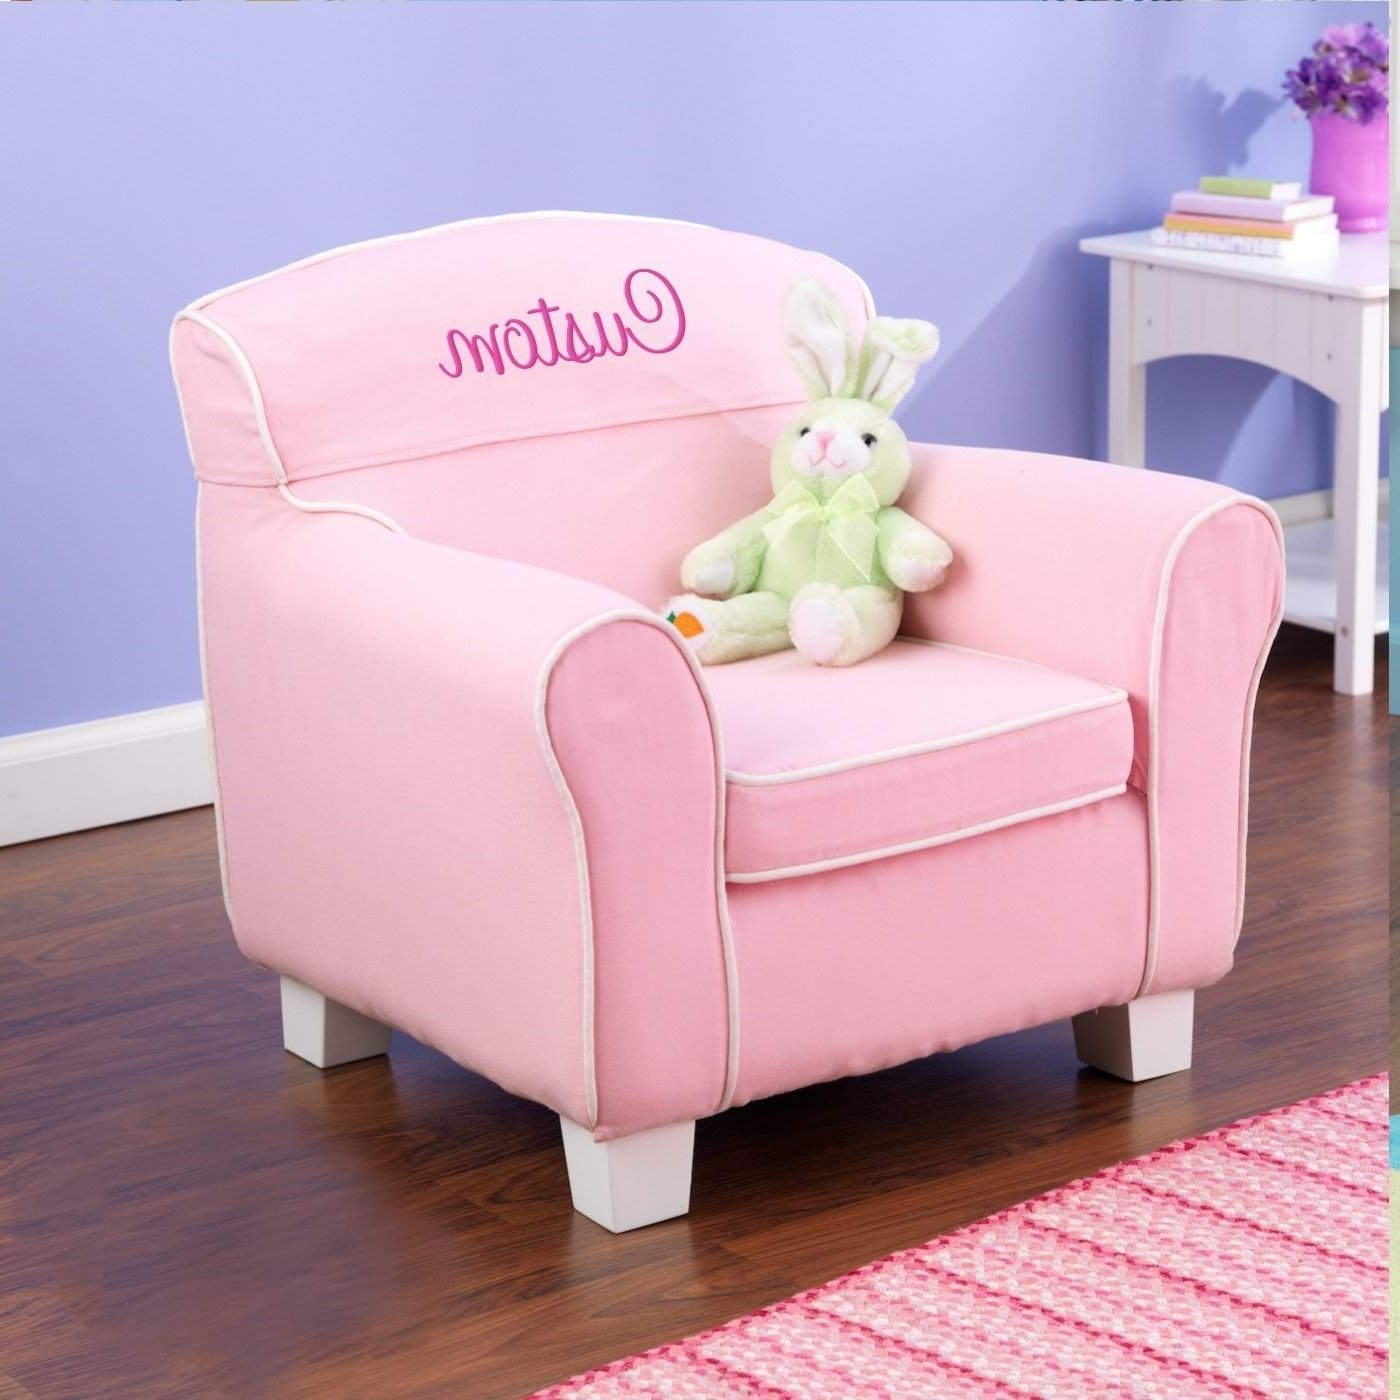 Personalized Kids Chairs And Sofas Inside Recent Baby Lazy Boy Chair Child's Foam Chair Bed Toddler Chair Canada (View 9 of 15)